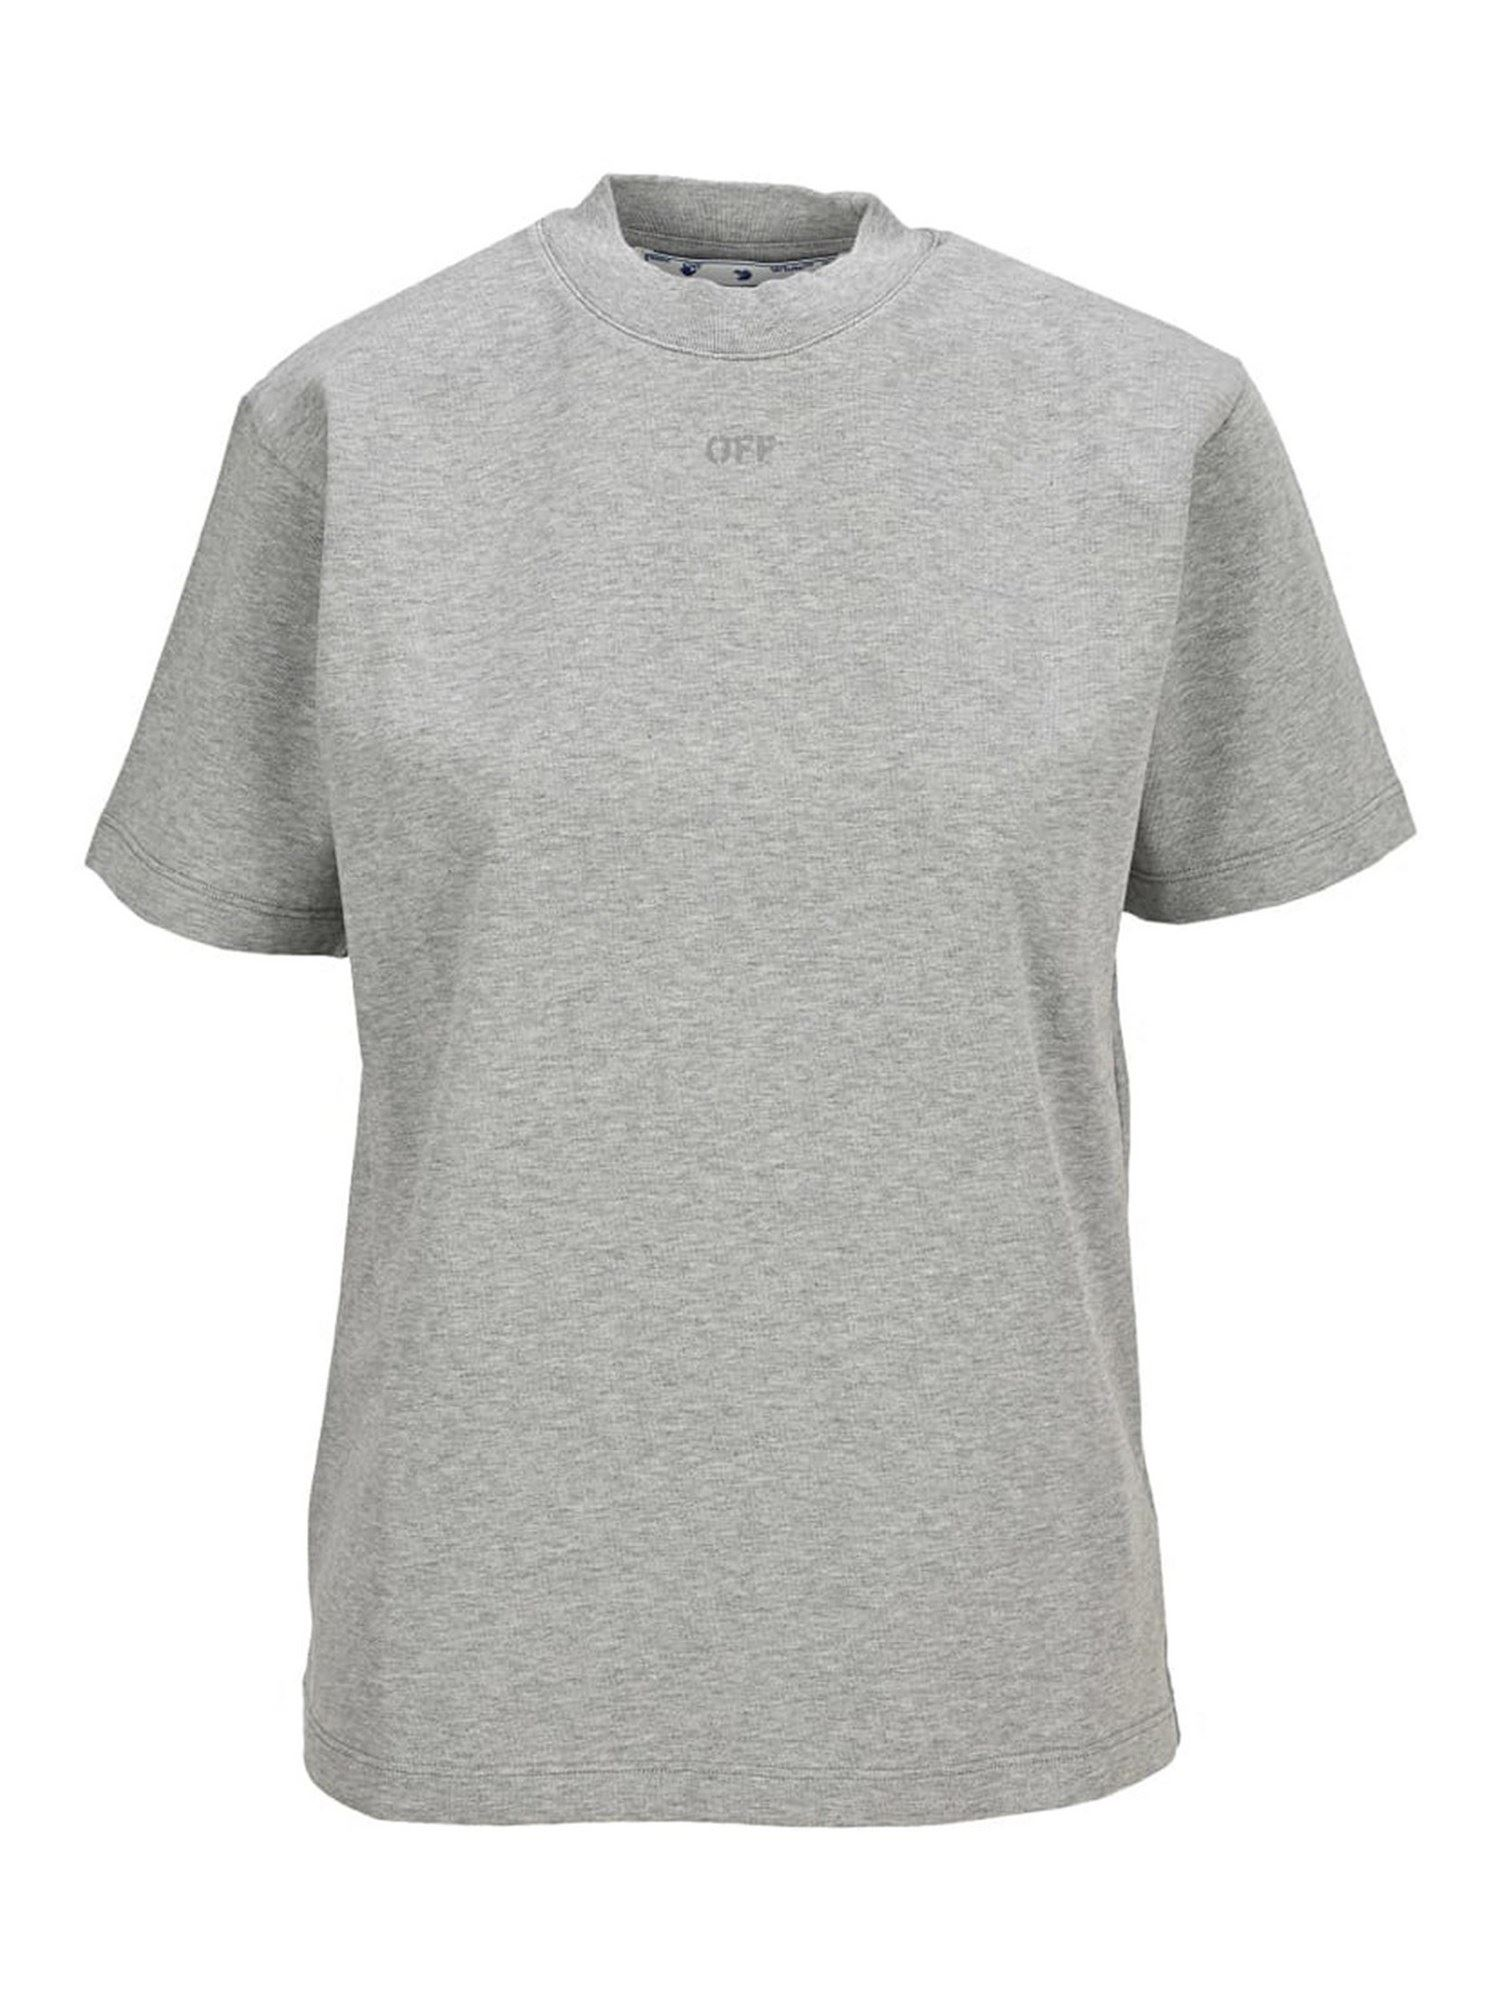 Off-White ARROW T-SHIRT IN GREY